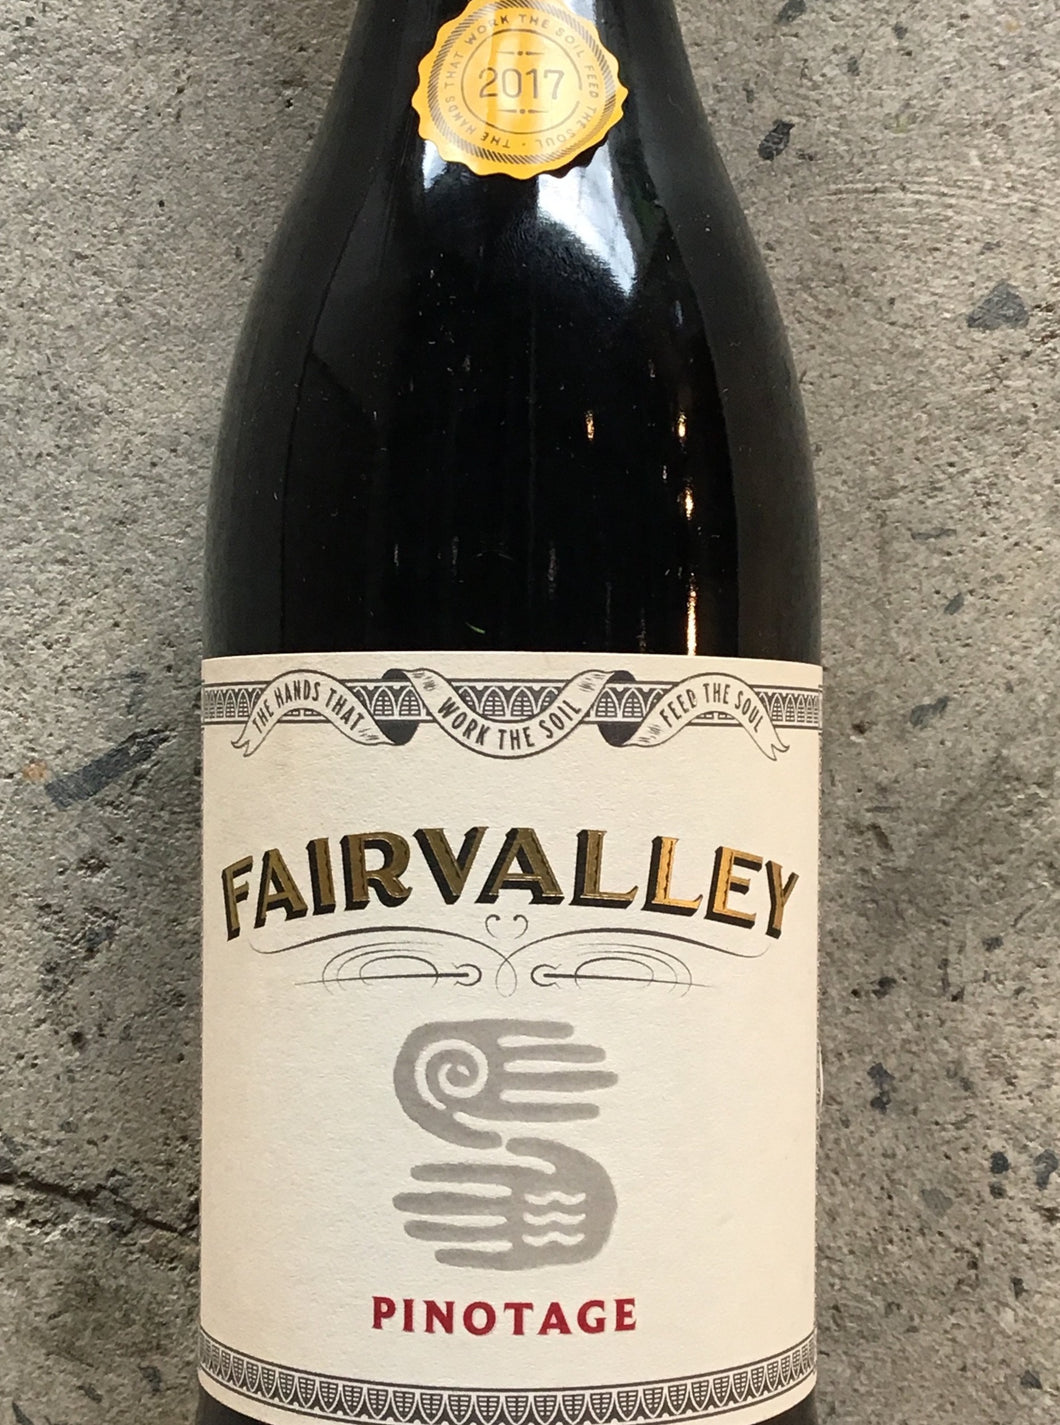 Fair Valley - Pinotage - South Africa